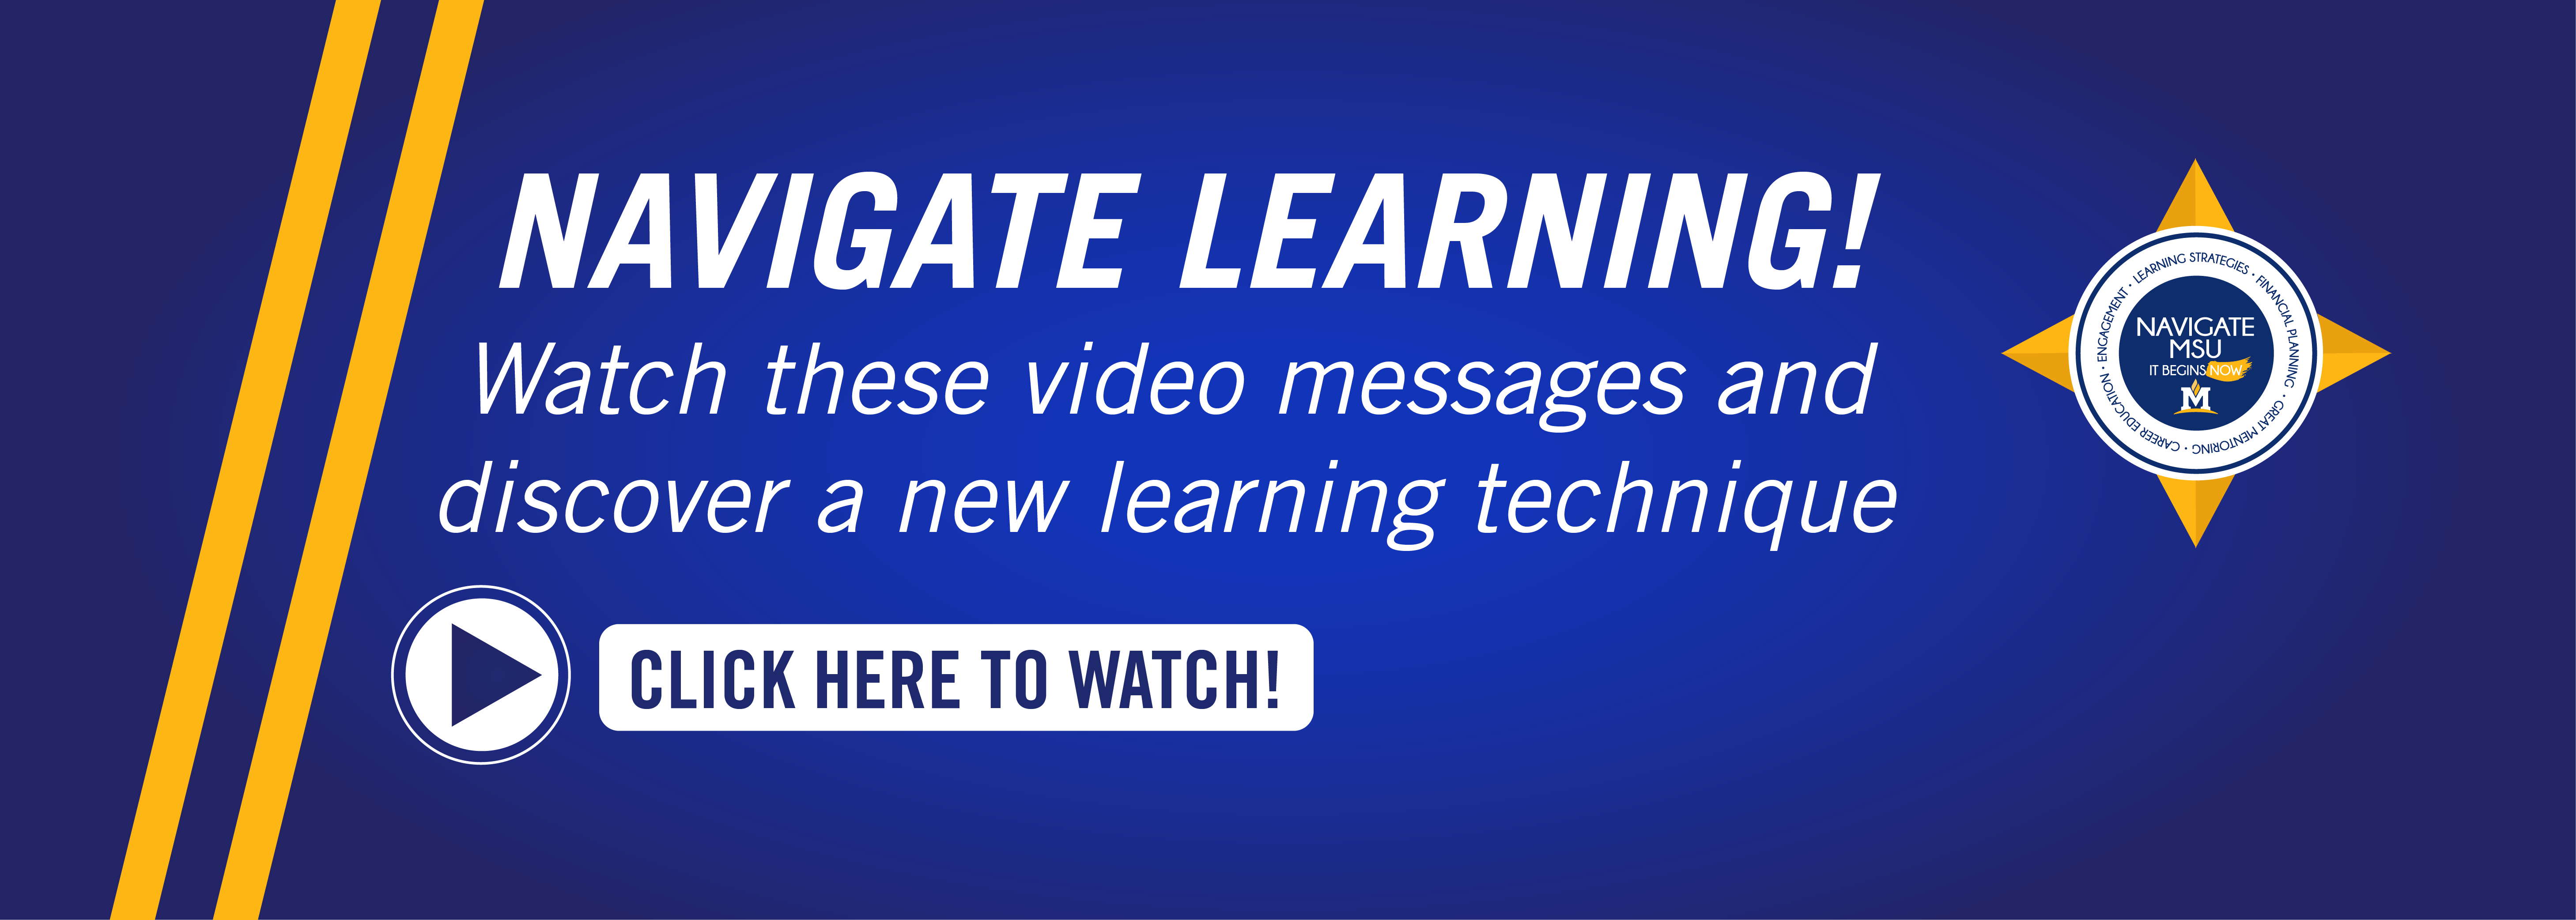 Watch these video messages and discover new learning techniques